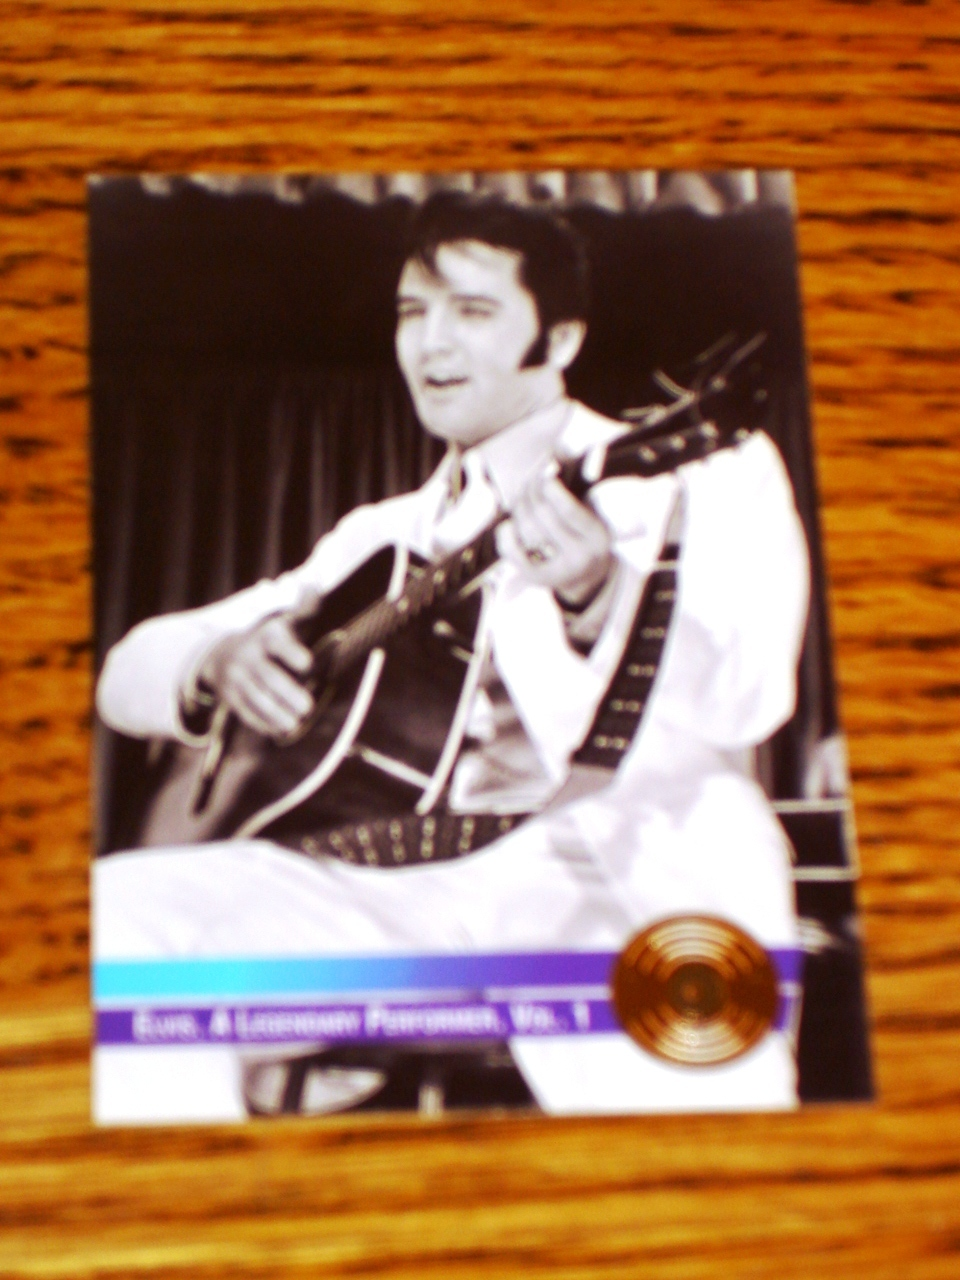 ELVIS A LEGENDARY PERFORMER VOL. 1 COLLECTIBLE GOLD CARD #11